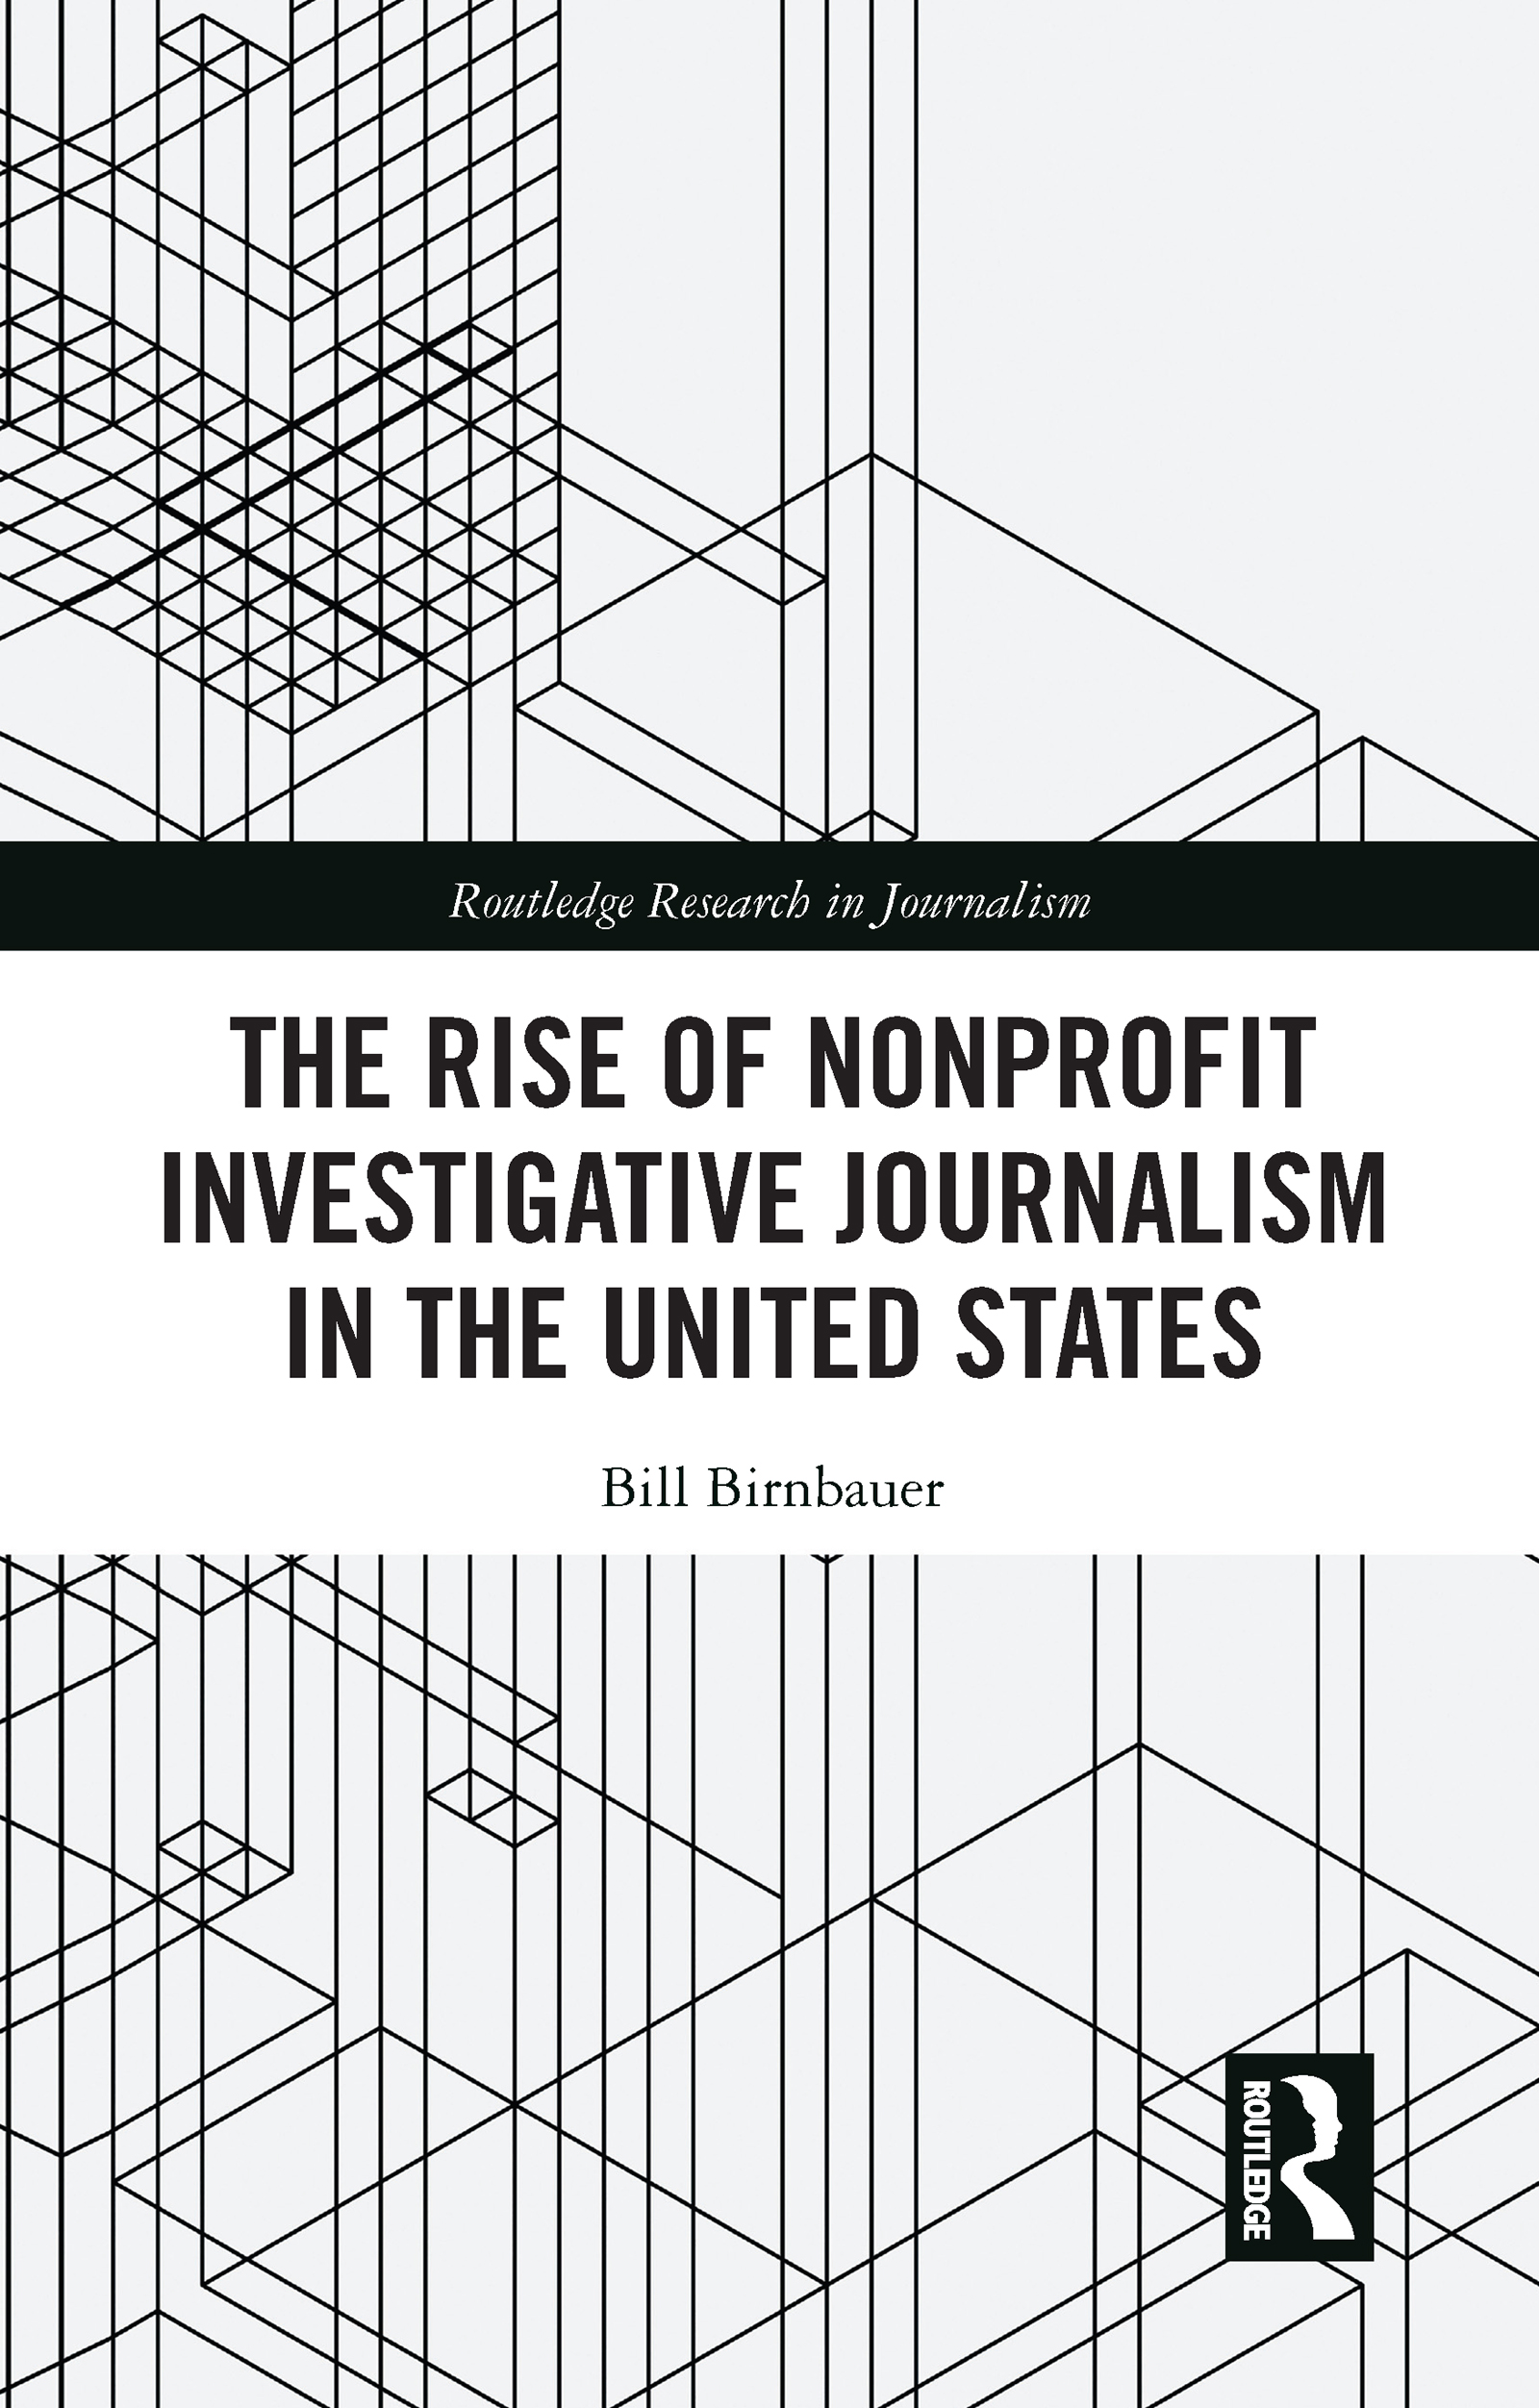 The Rise of NonProfit Investigative Journalism in the United States